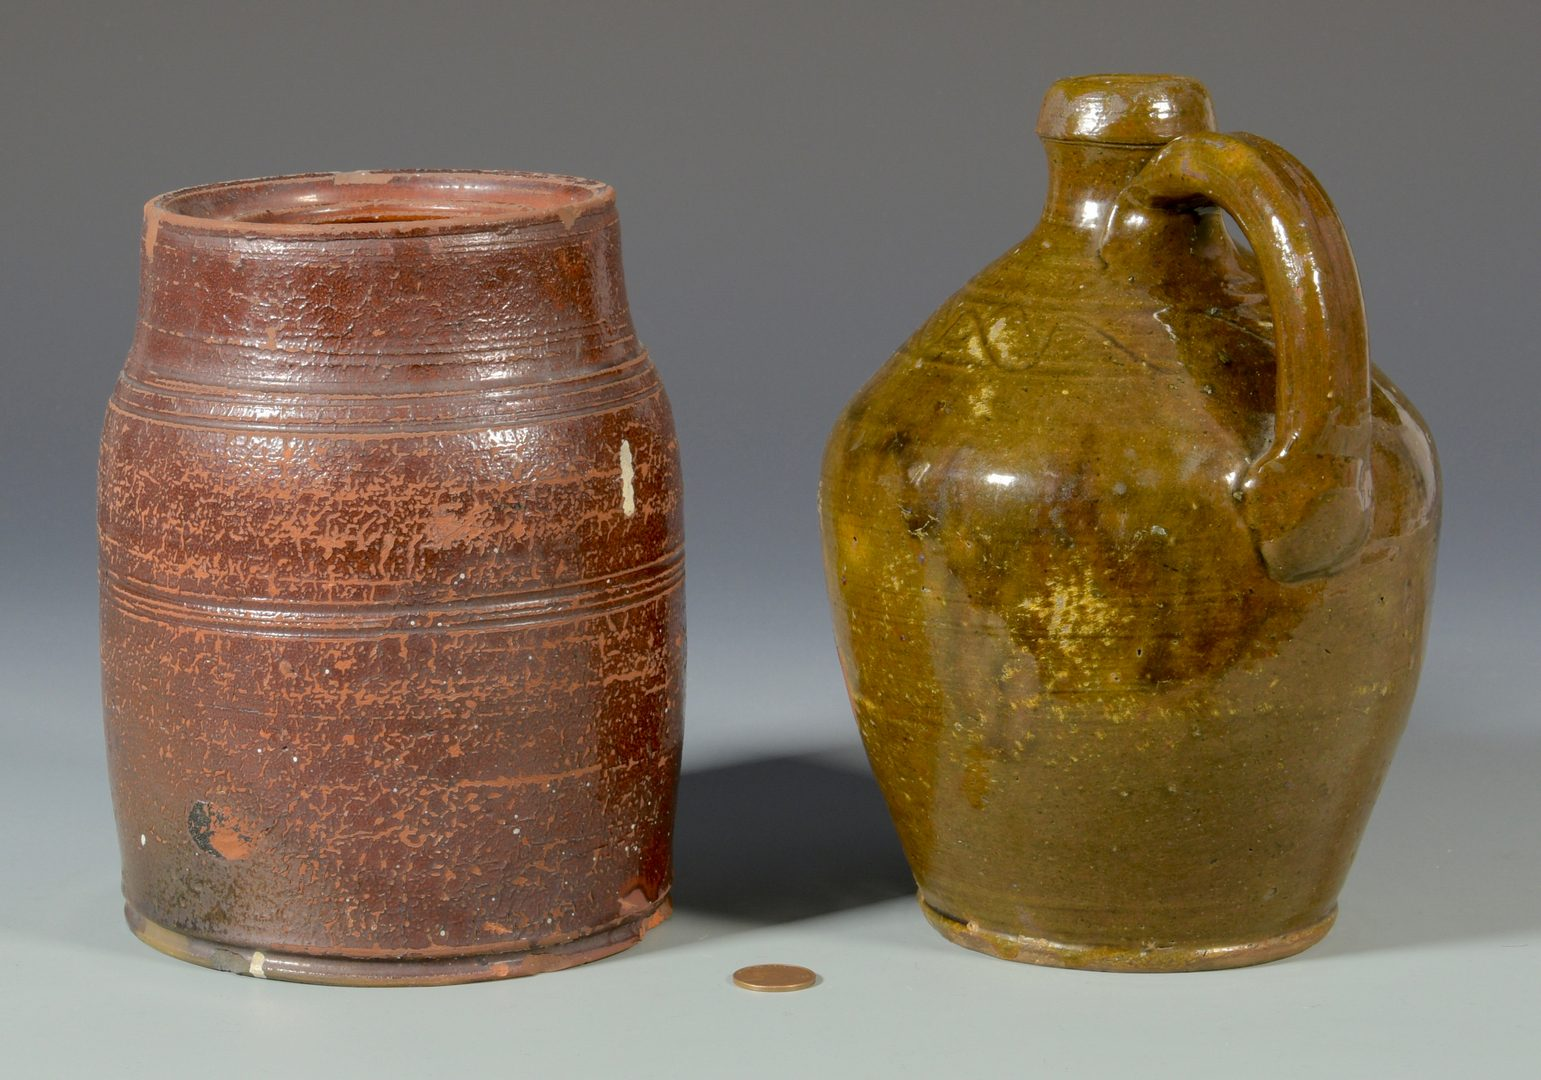 Lot 134: East TN Earthenware Pottery Jug & Jar, Attrib. Cain